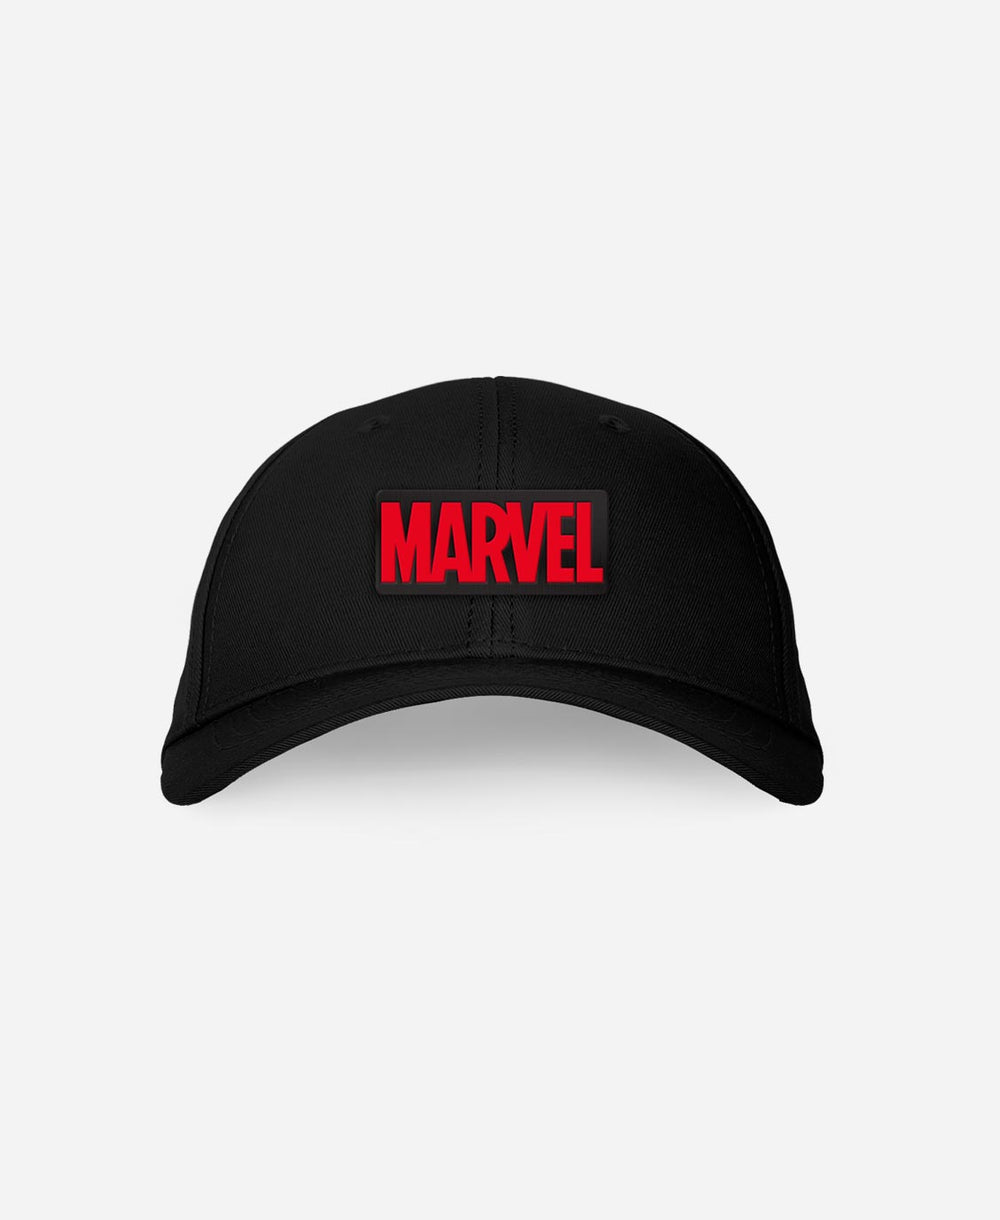 Marvel Franchise Cap